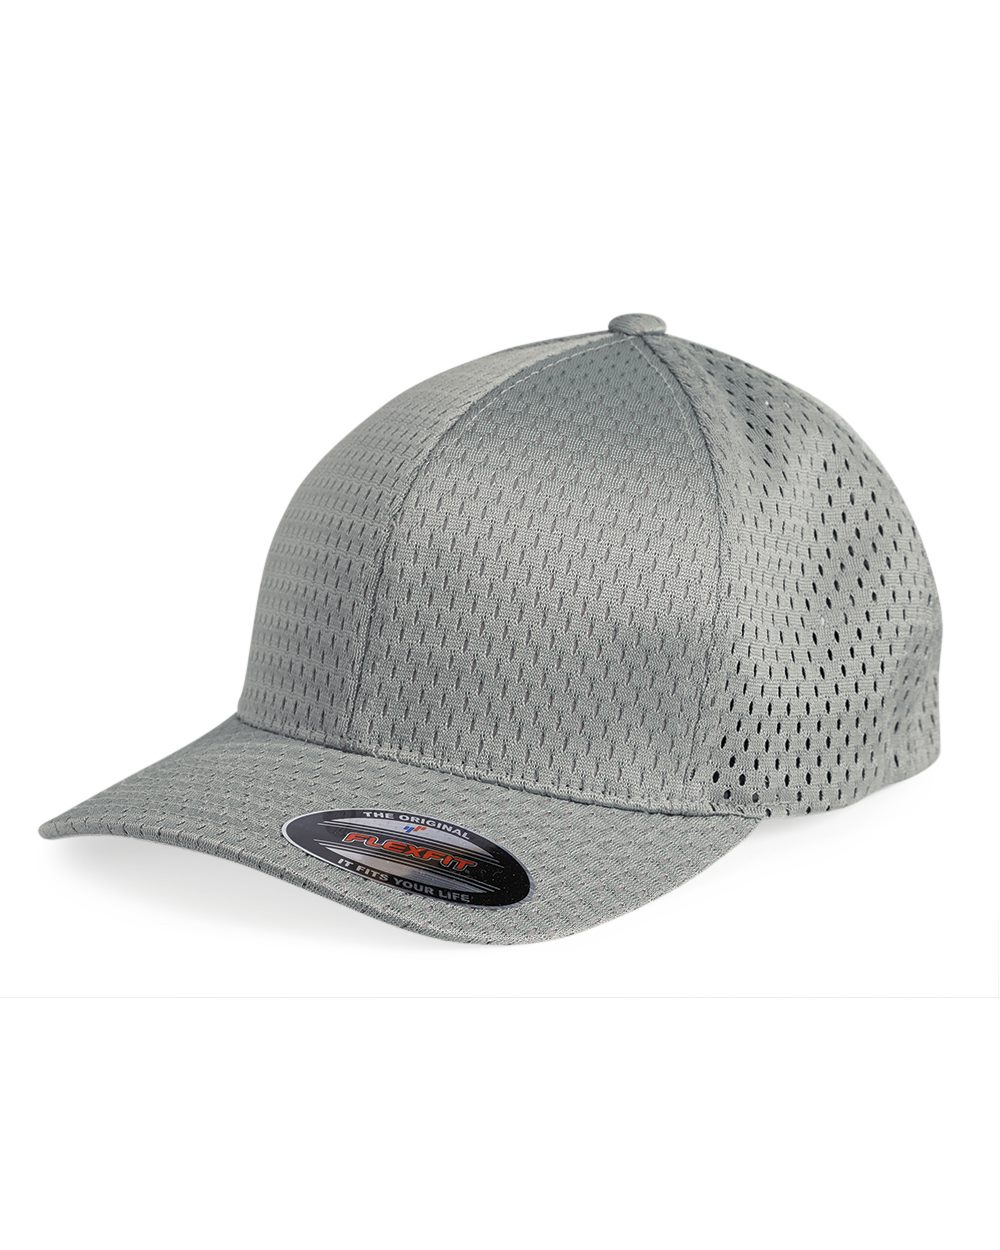 Flexfit 6777 Athletic Mesh Cap